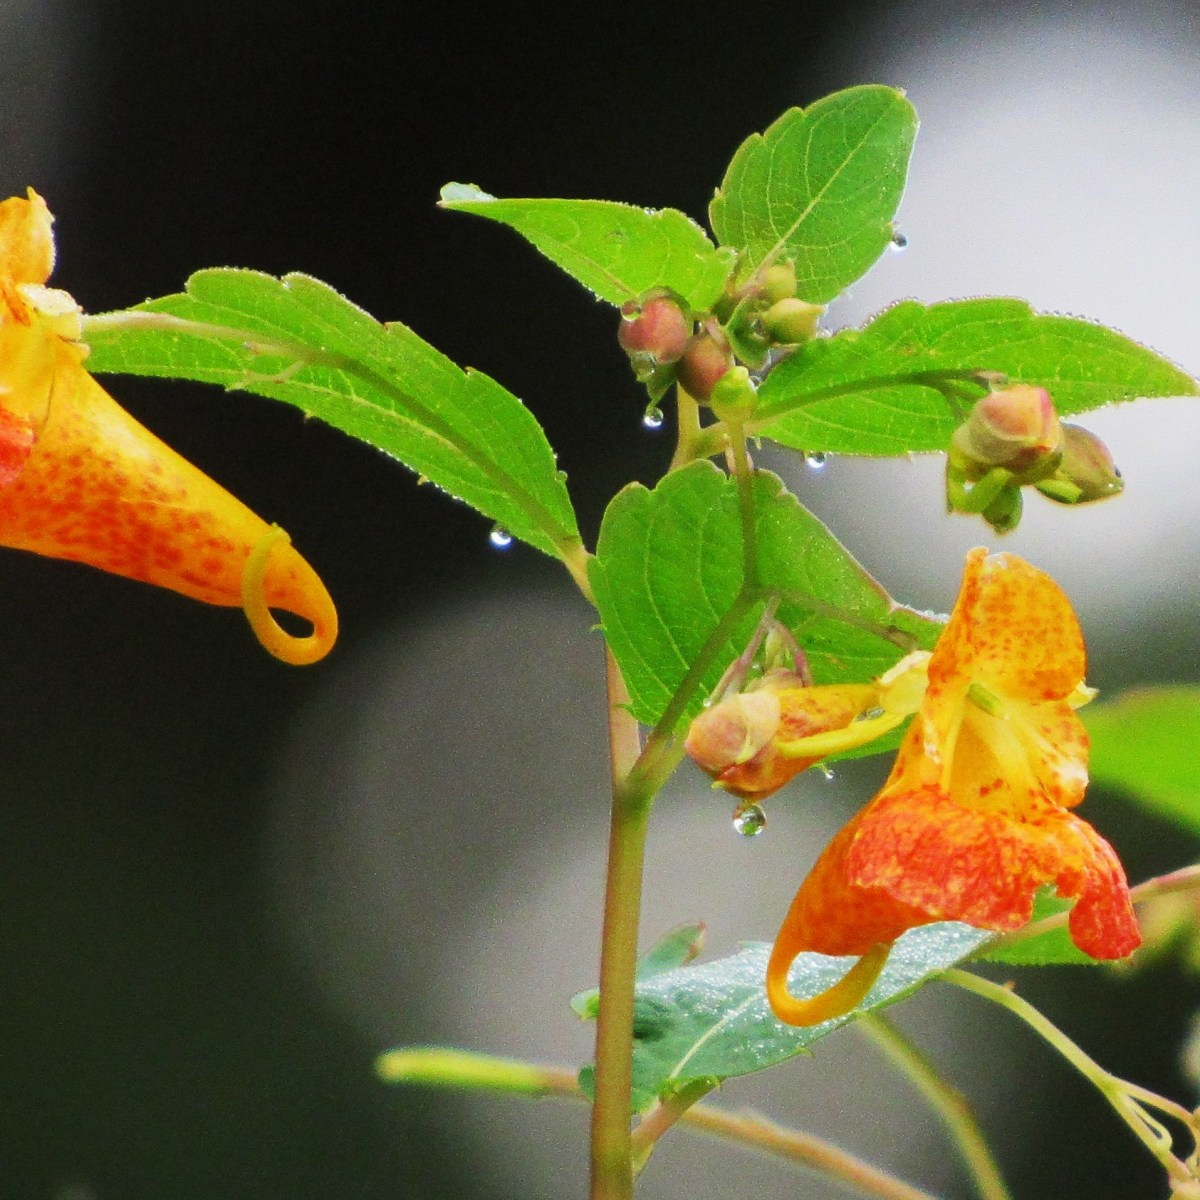 A spotted jewelweed plant covered with drops of dew